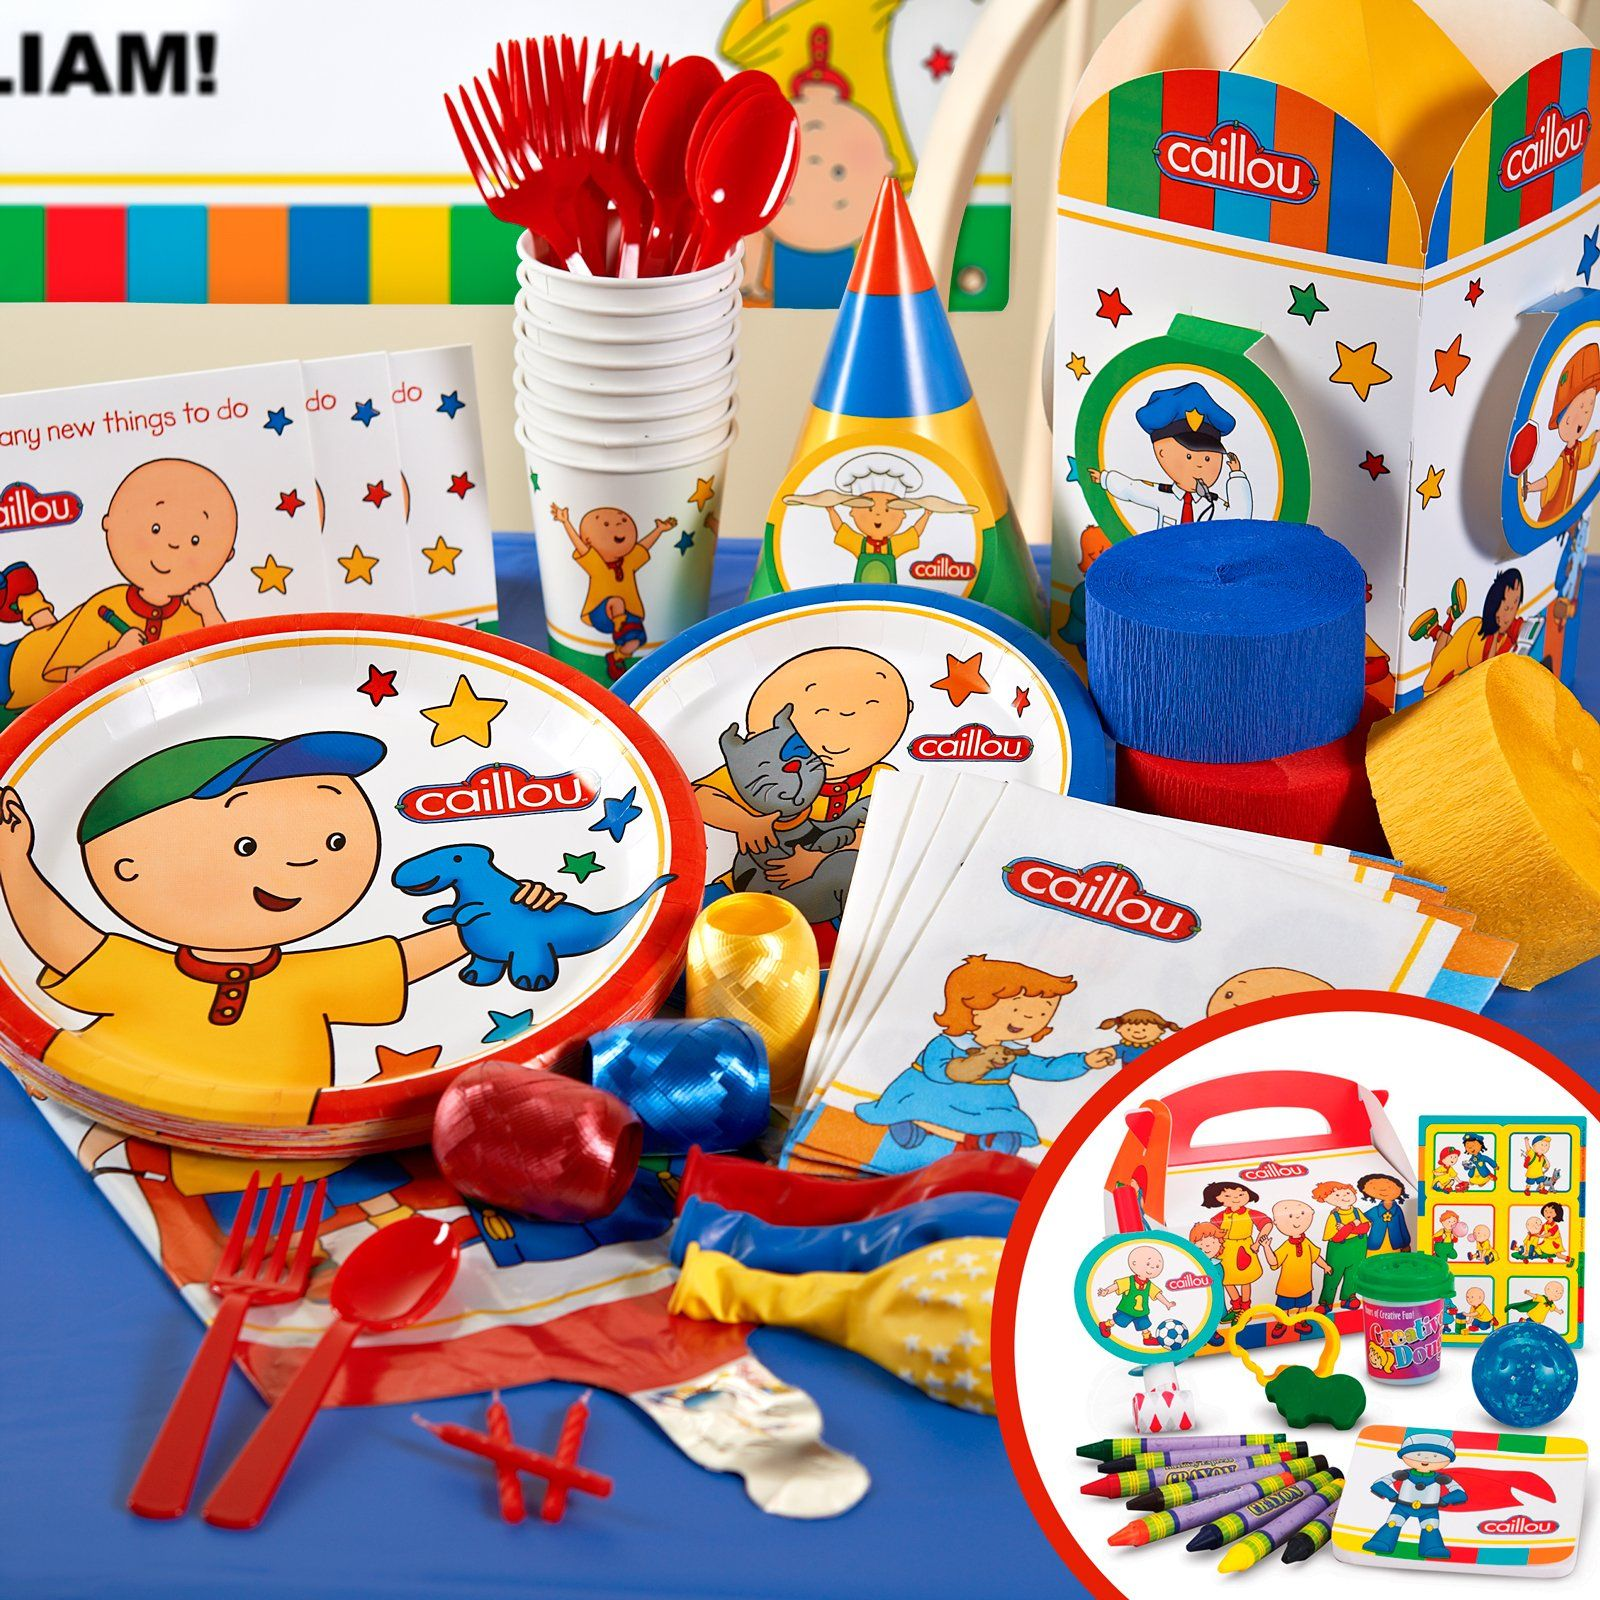 Caillou Birthday Party Supplies Caillou Birthday Party Ideas